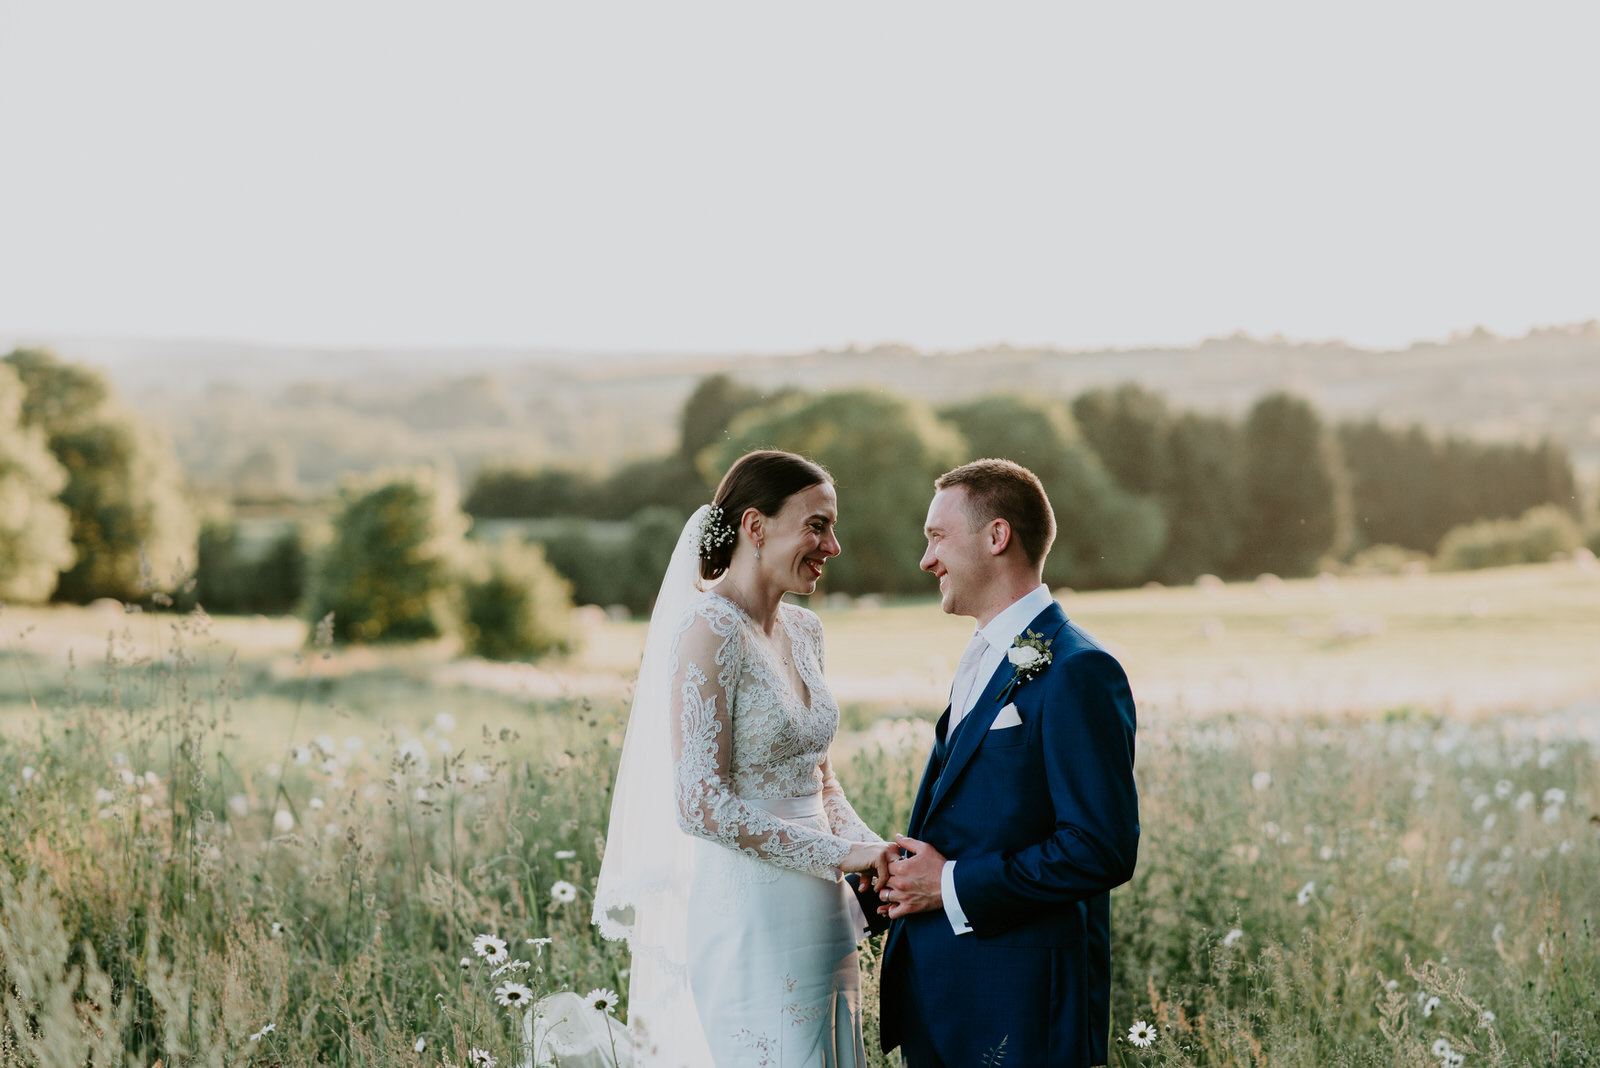 Intimate_Warwickshire_Countryside_Wedding_UK_86.JPG